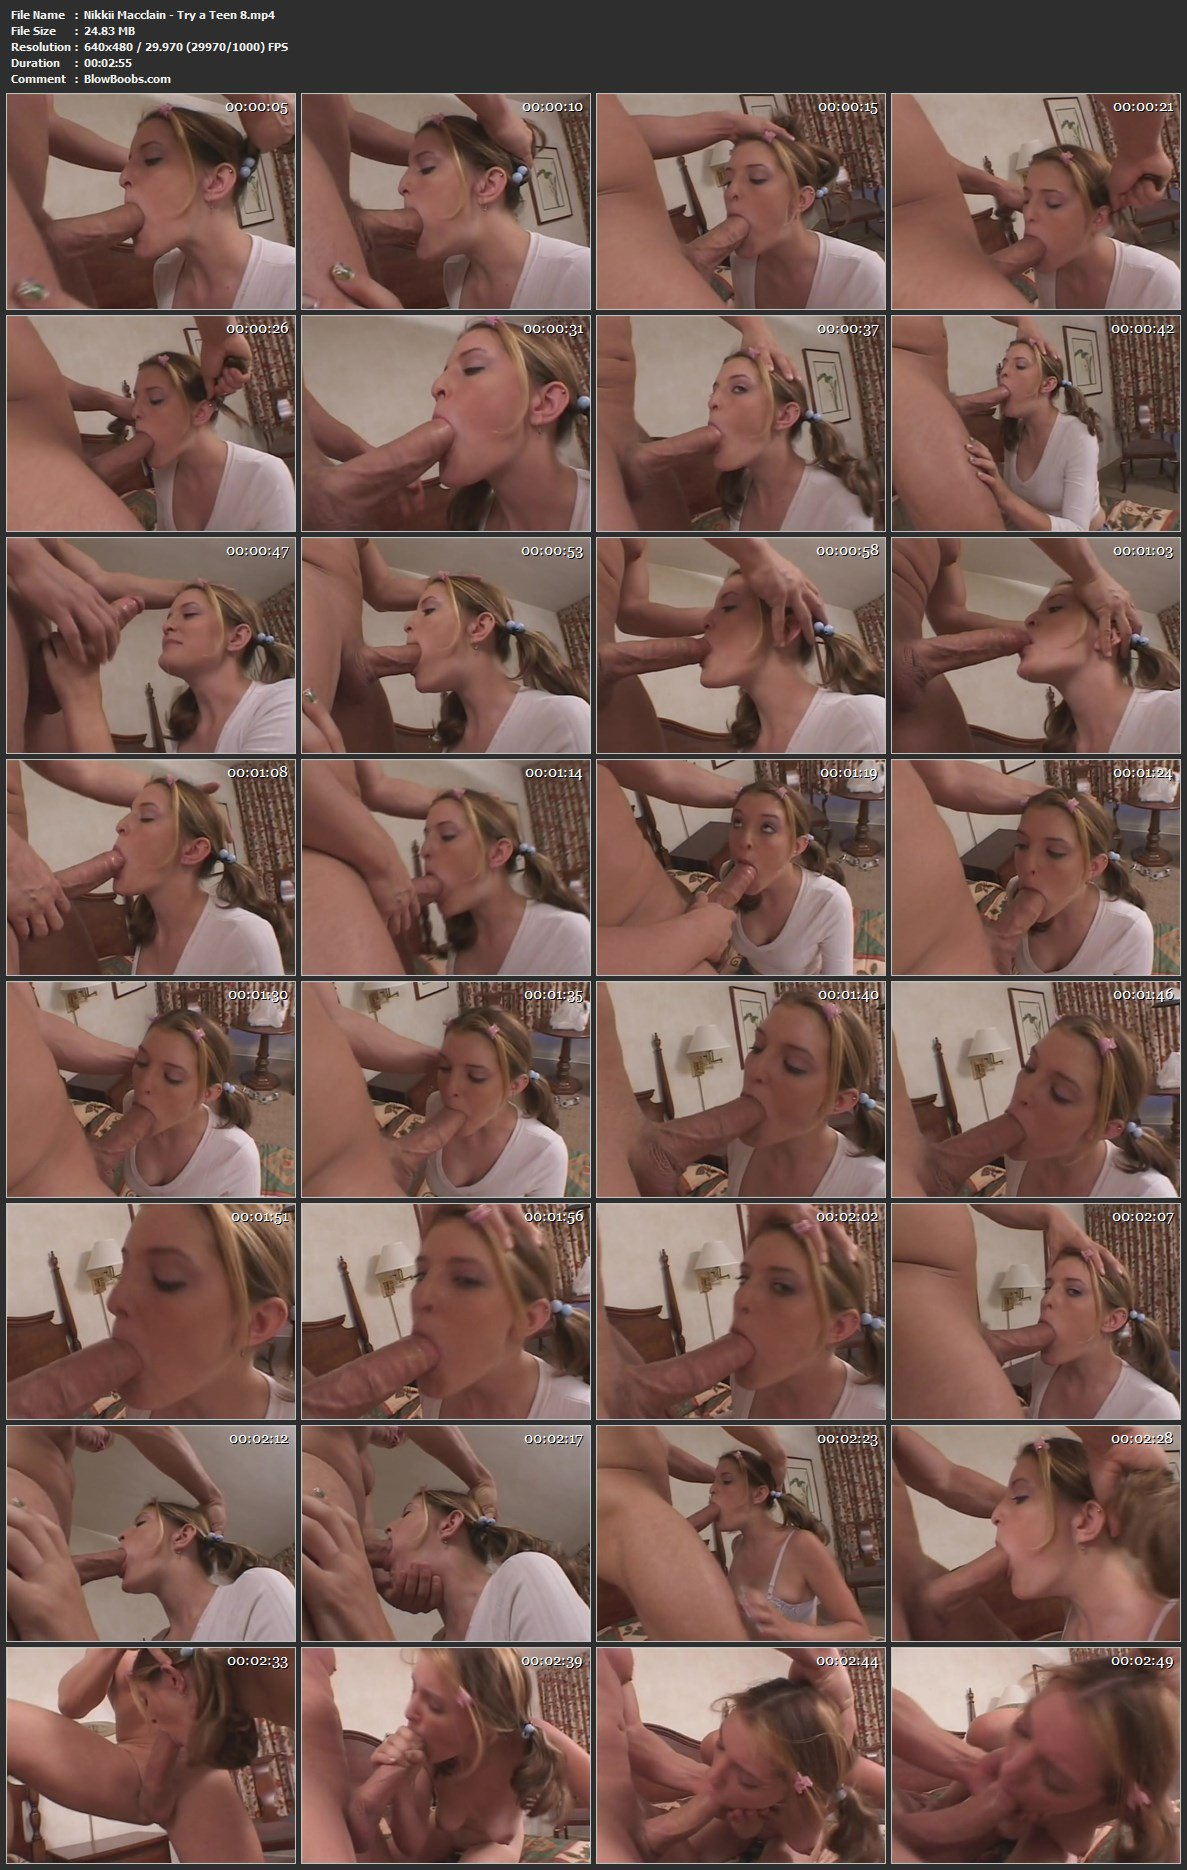 Nikkii Macclain - Sweet Pigtailed Teen Gives Pretty Blowjob